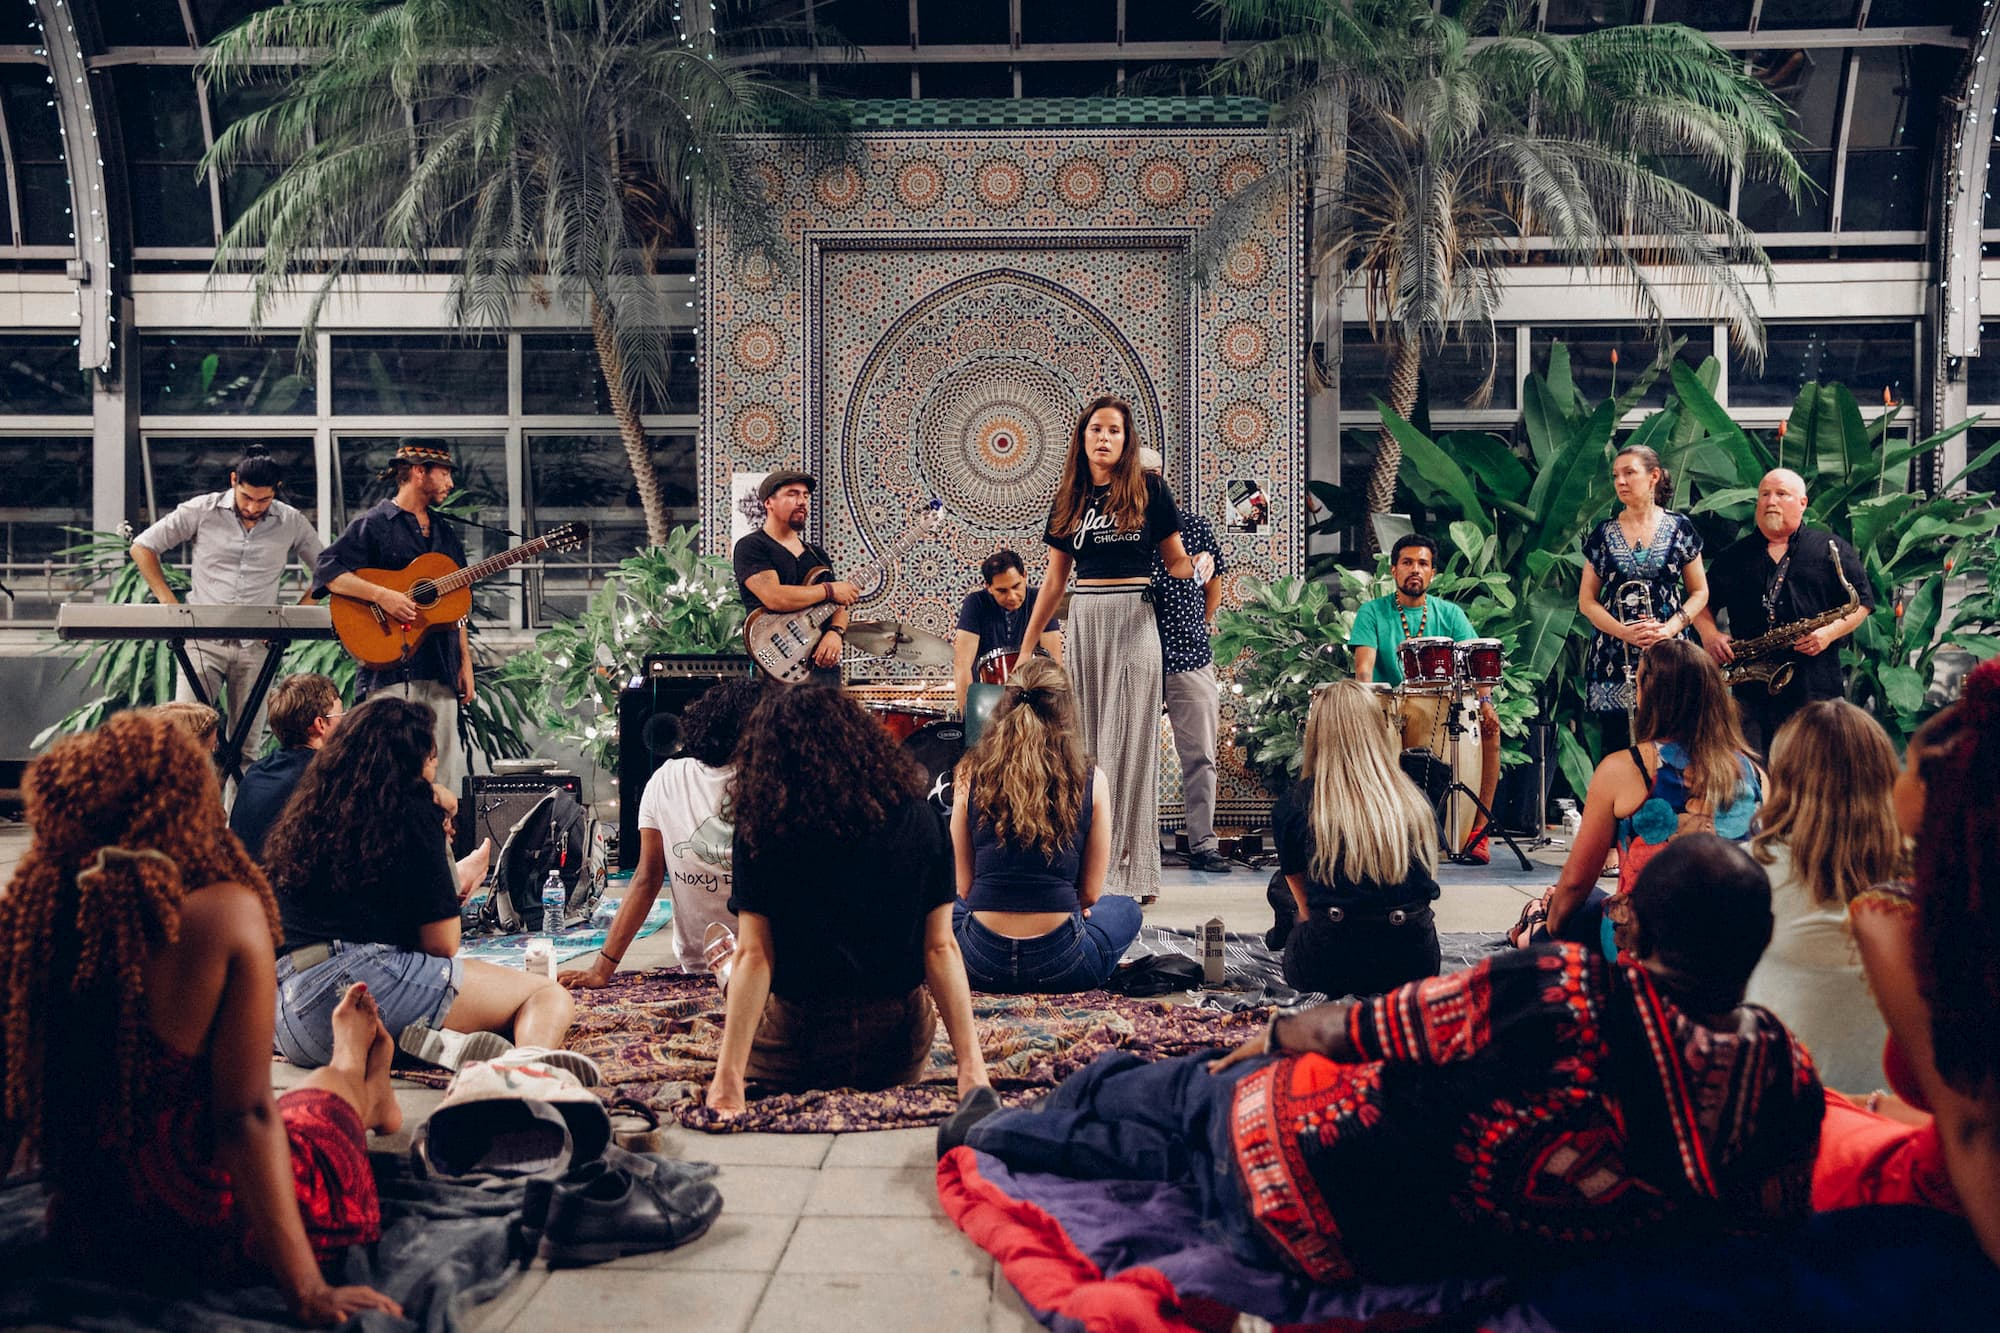 Garfield Conservatory play Sofar Chicago | iwoca